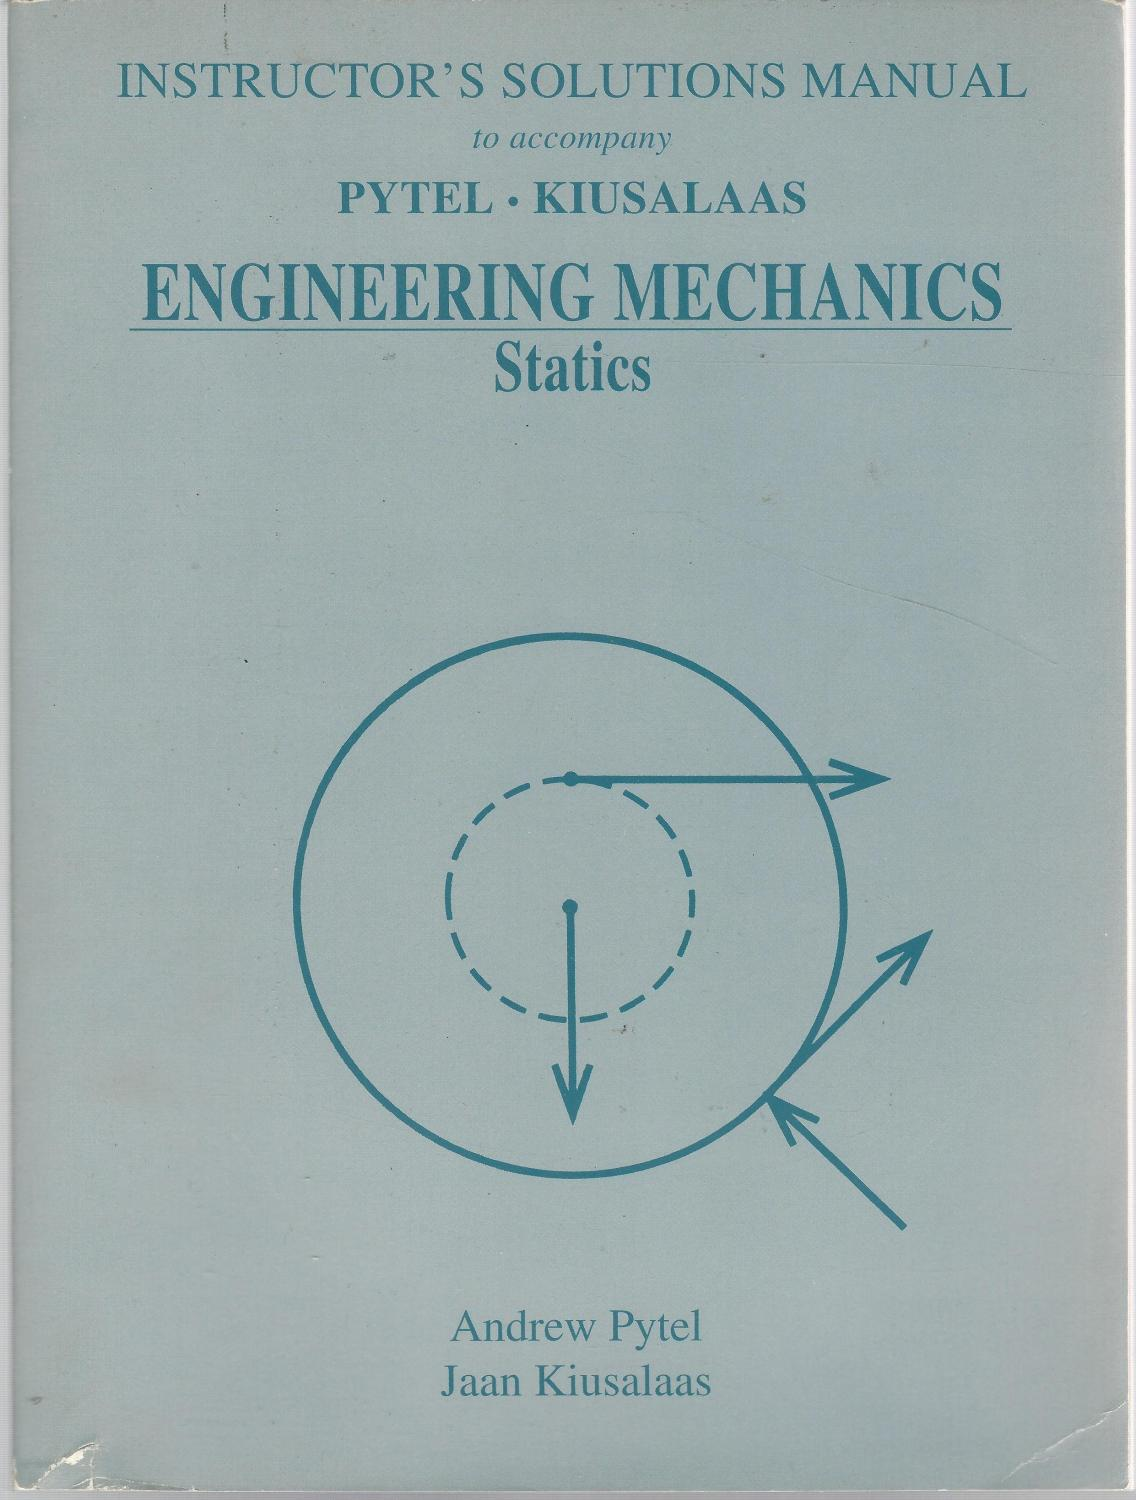 Instructor's Solutions Manual to accompany Engineering Mechanics  Statistics: Pytel, Andrew & .